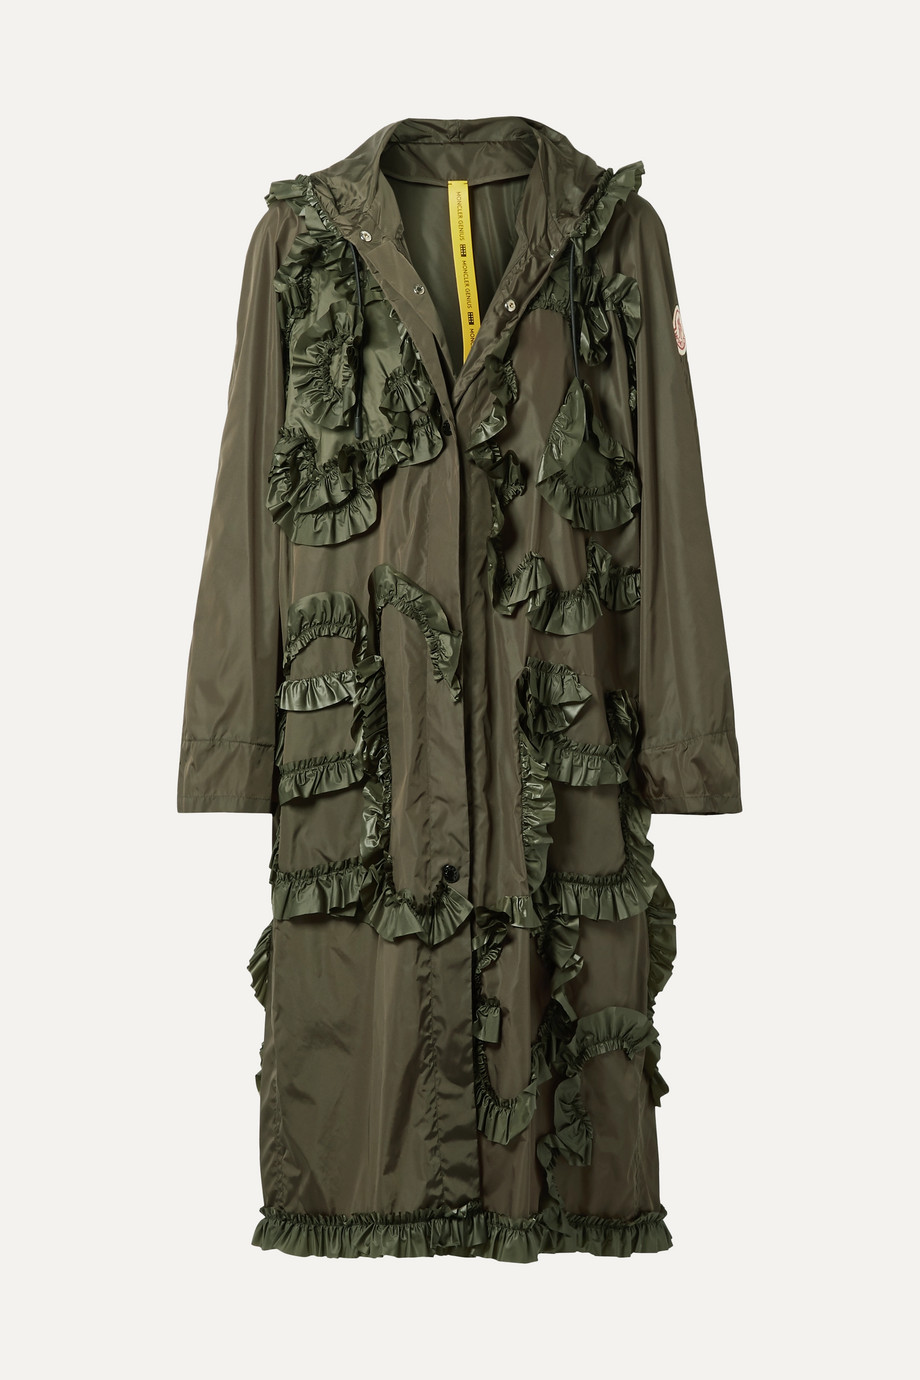 Moncler Genius + 4 Simone Rocha hooded ruffled shell jacket